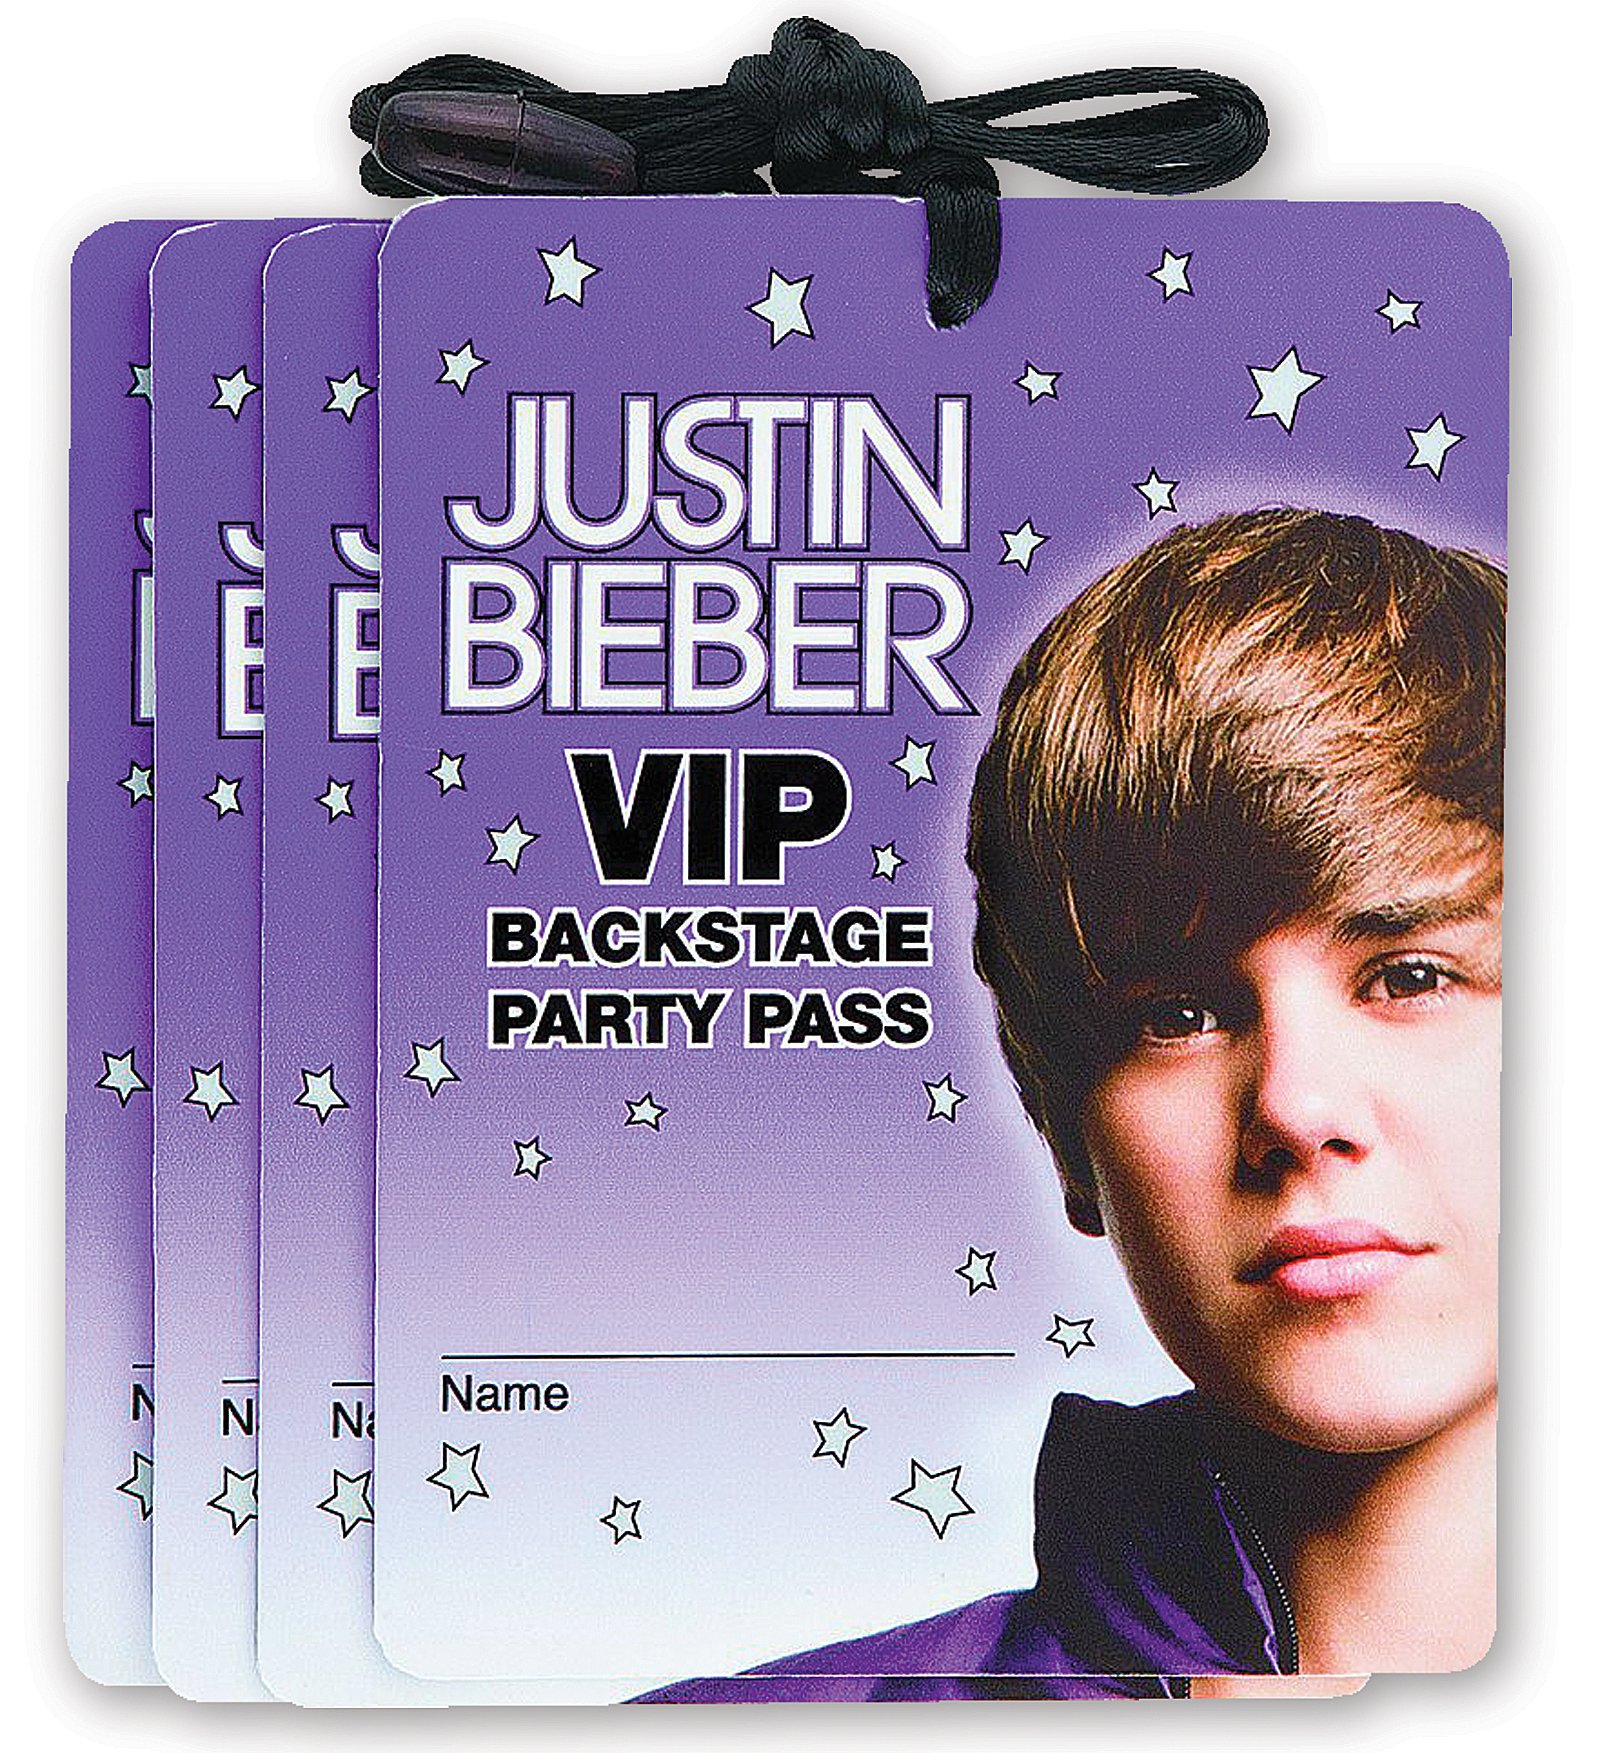 Justin Bieber VIP Backstage Passes (4 count)